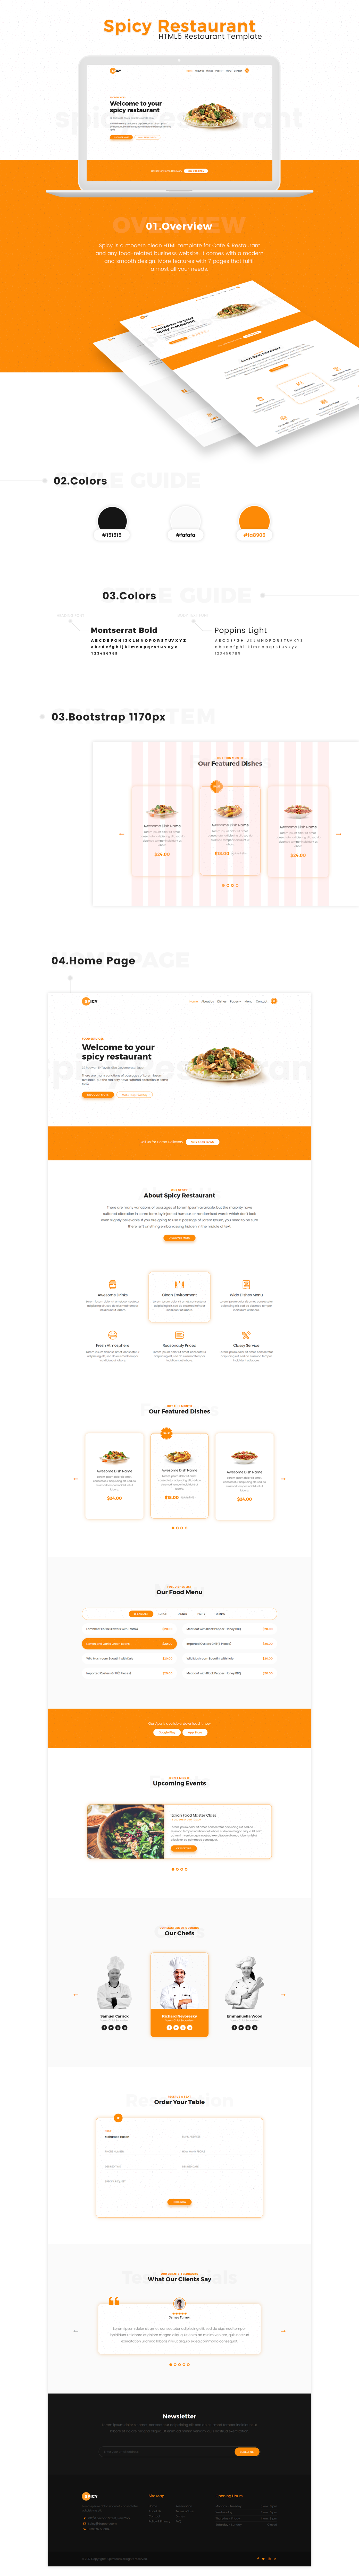 Spicy - Restaurant HTML5 Template - 5